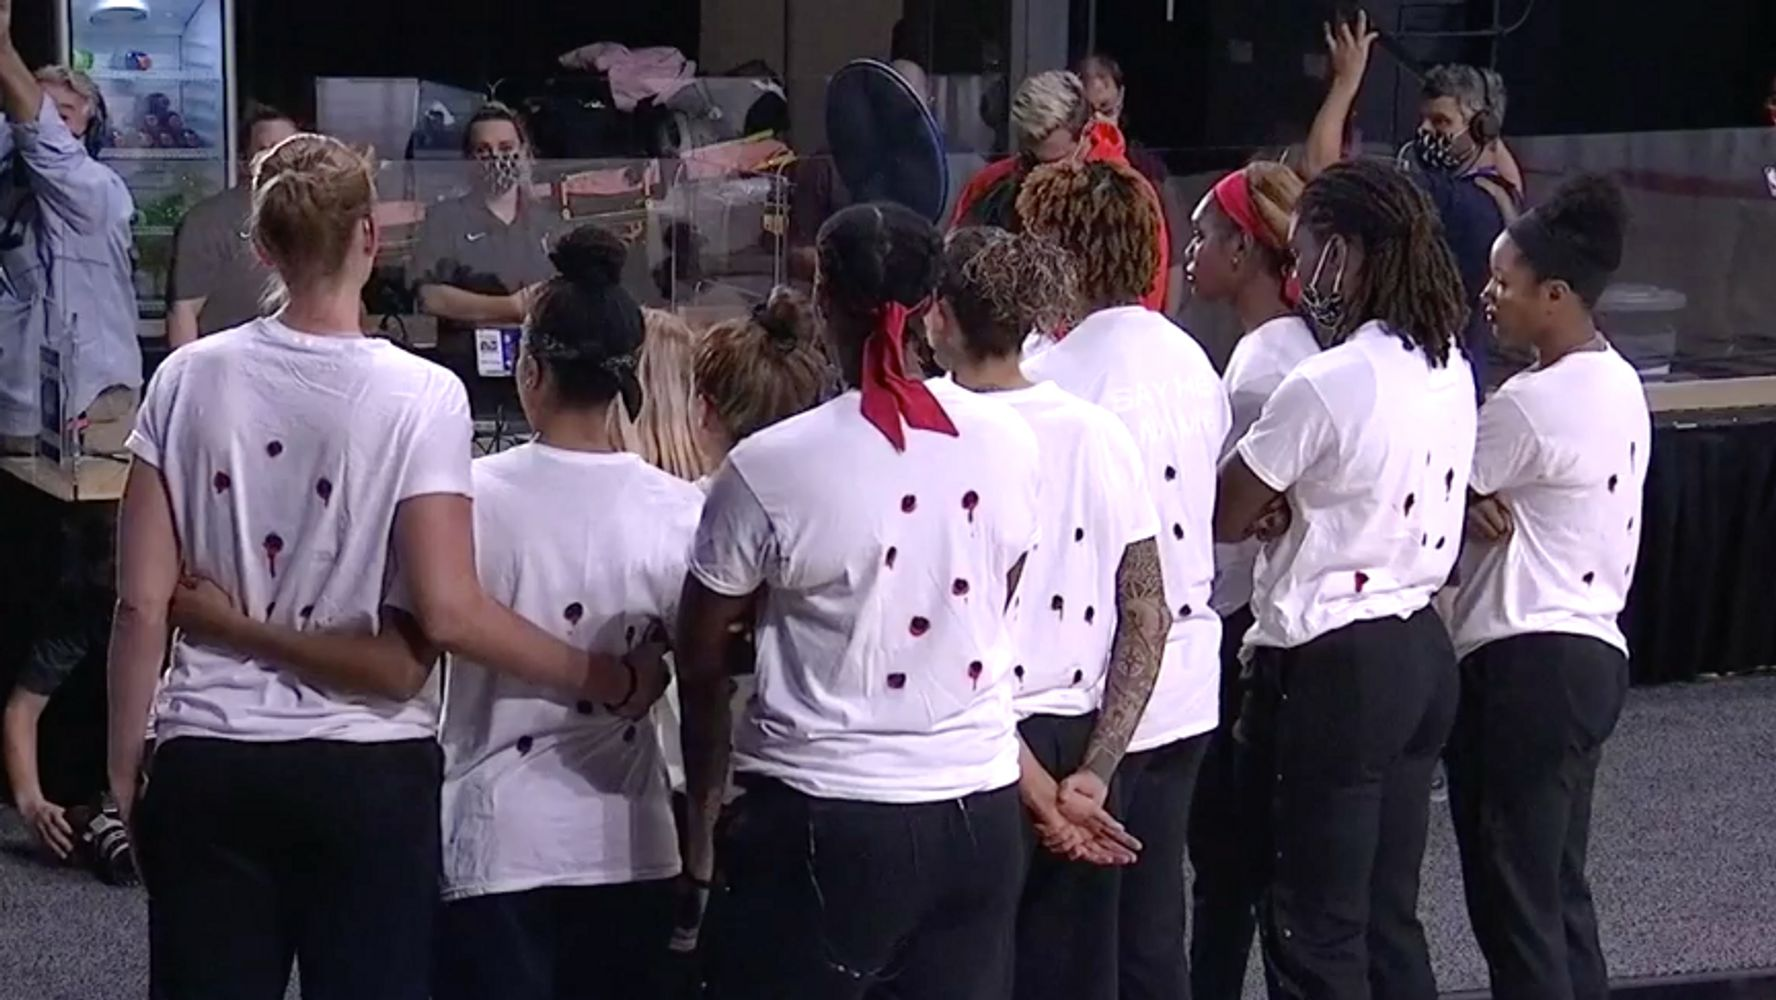 WNBA Players Wear Shirts With 'Bullet Holes'; Games Canceled In Protest | HuffPost